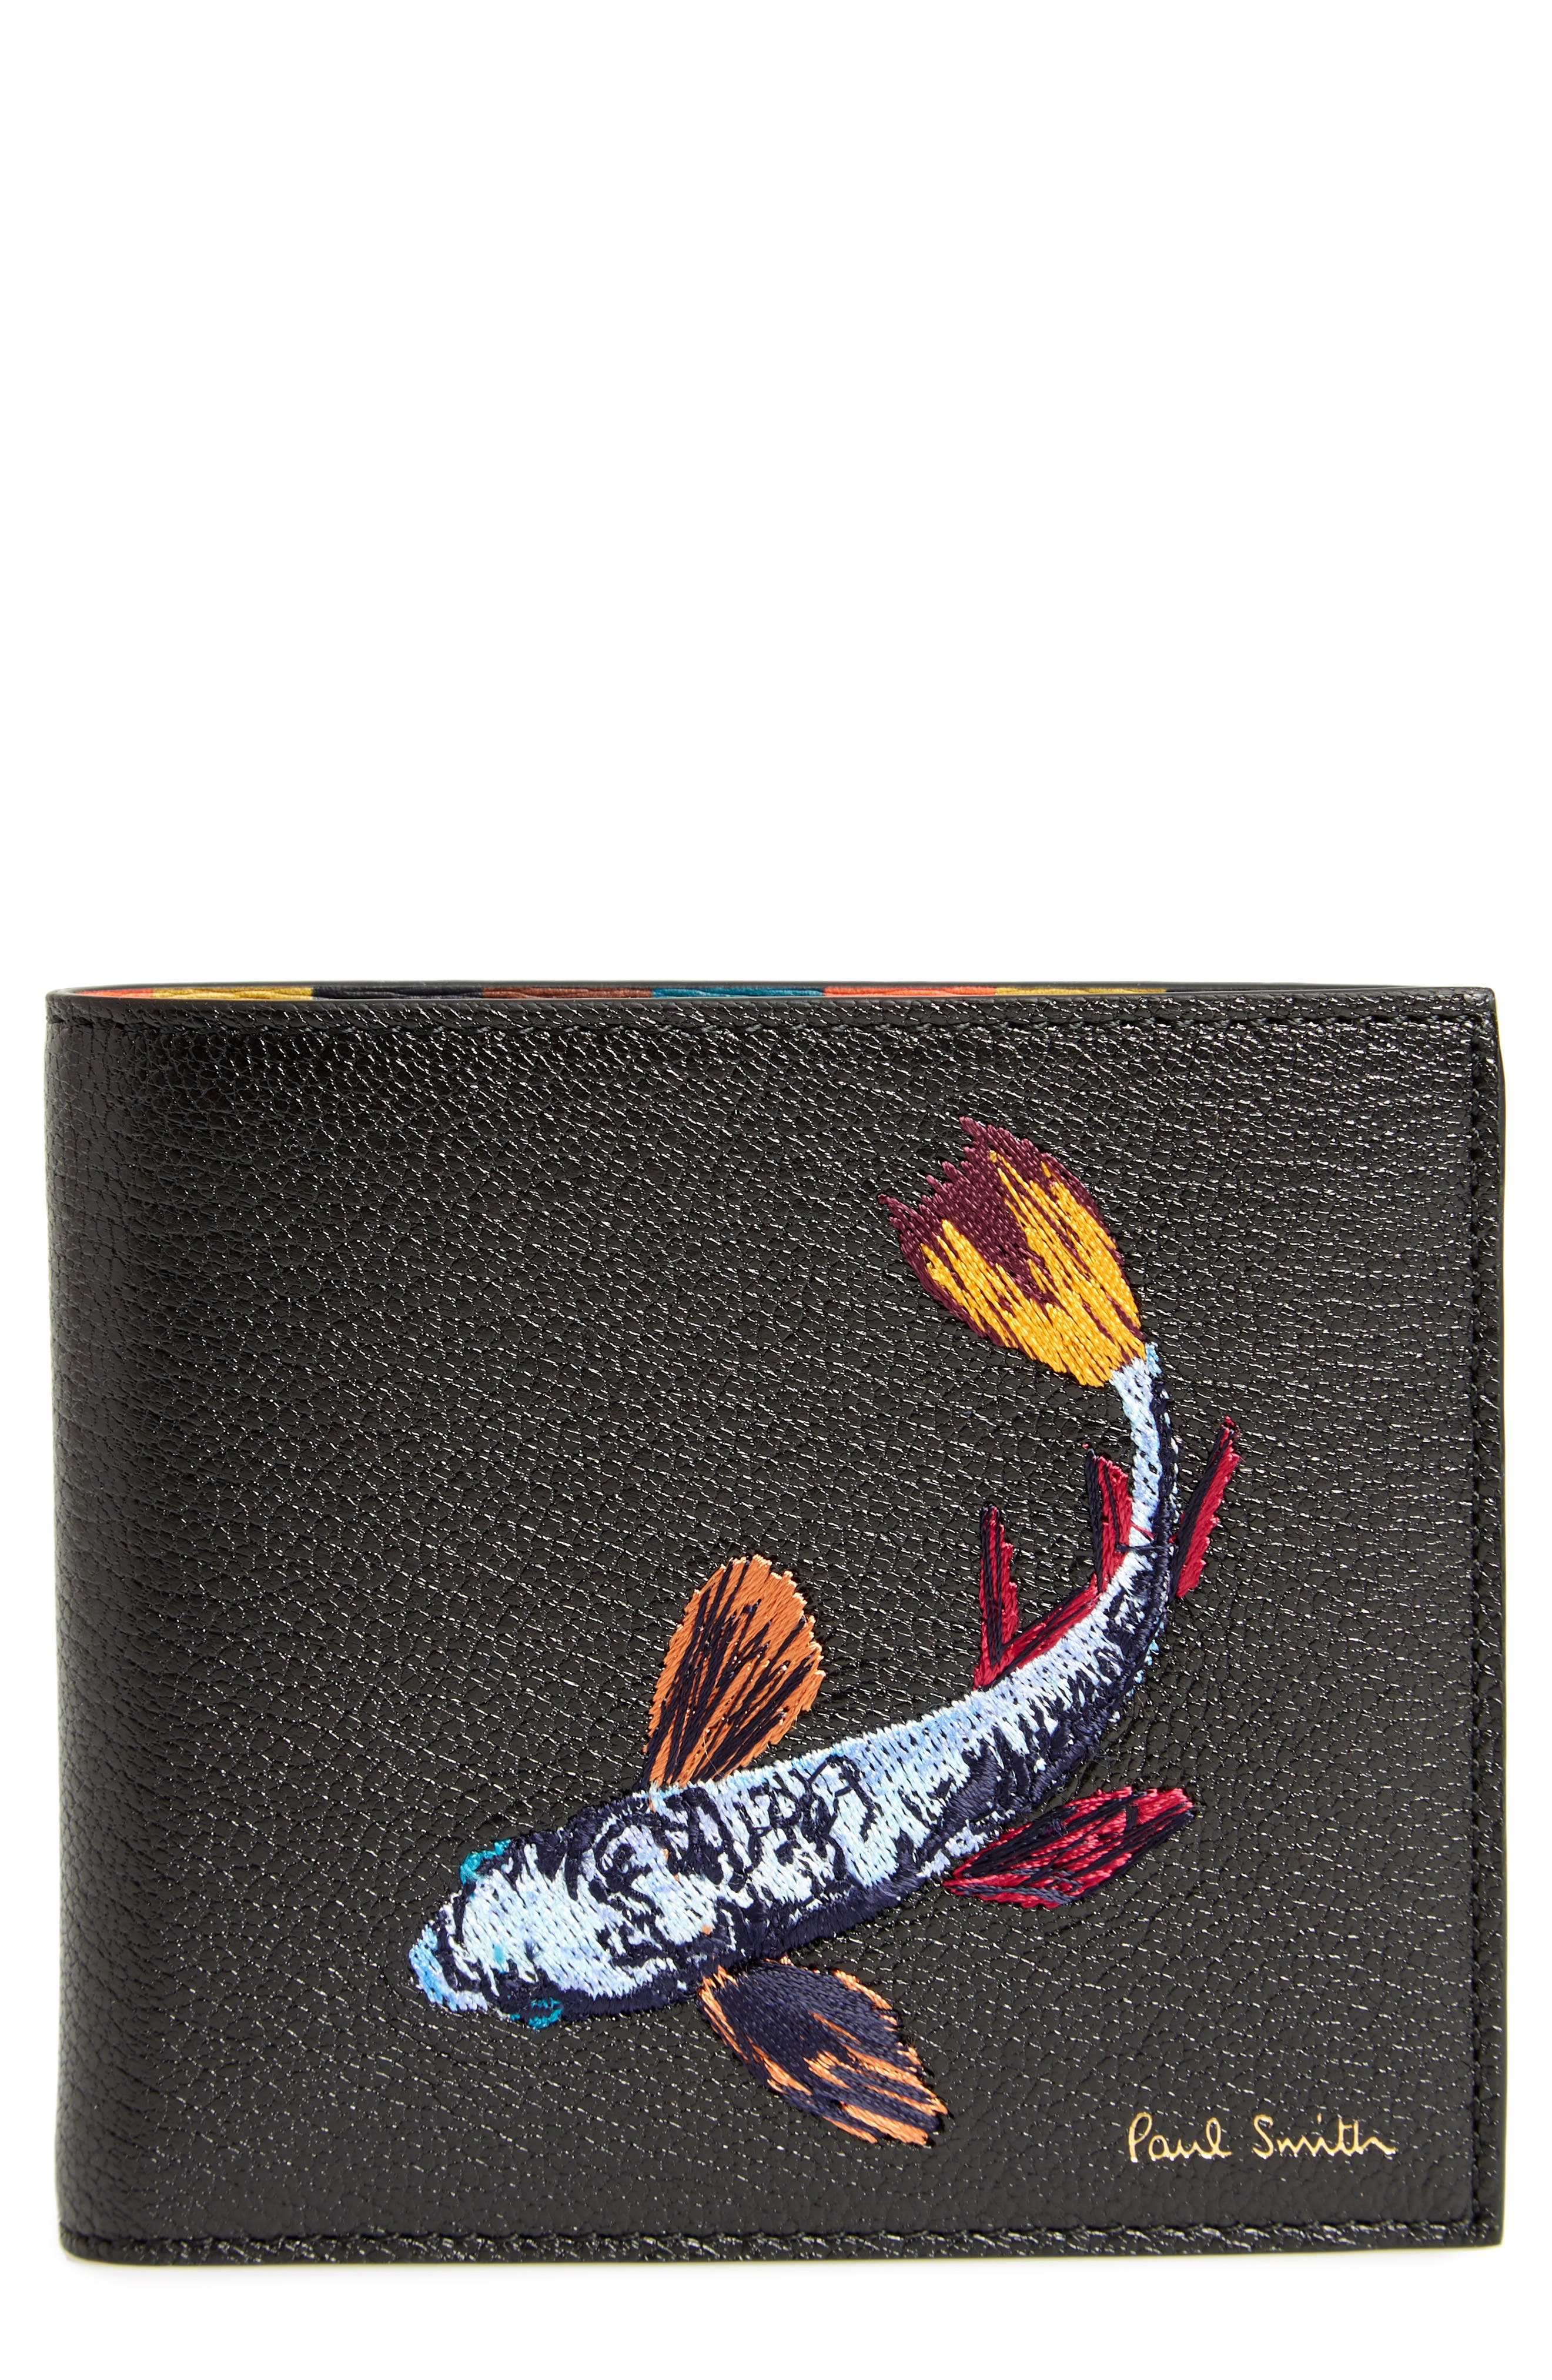 Paul Smith Embroidered Fish Leather Wallet